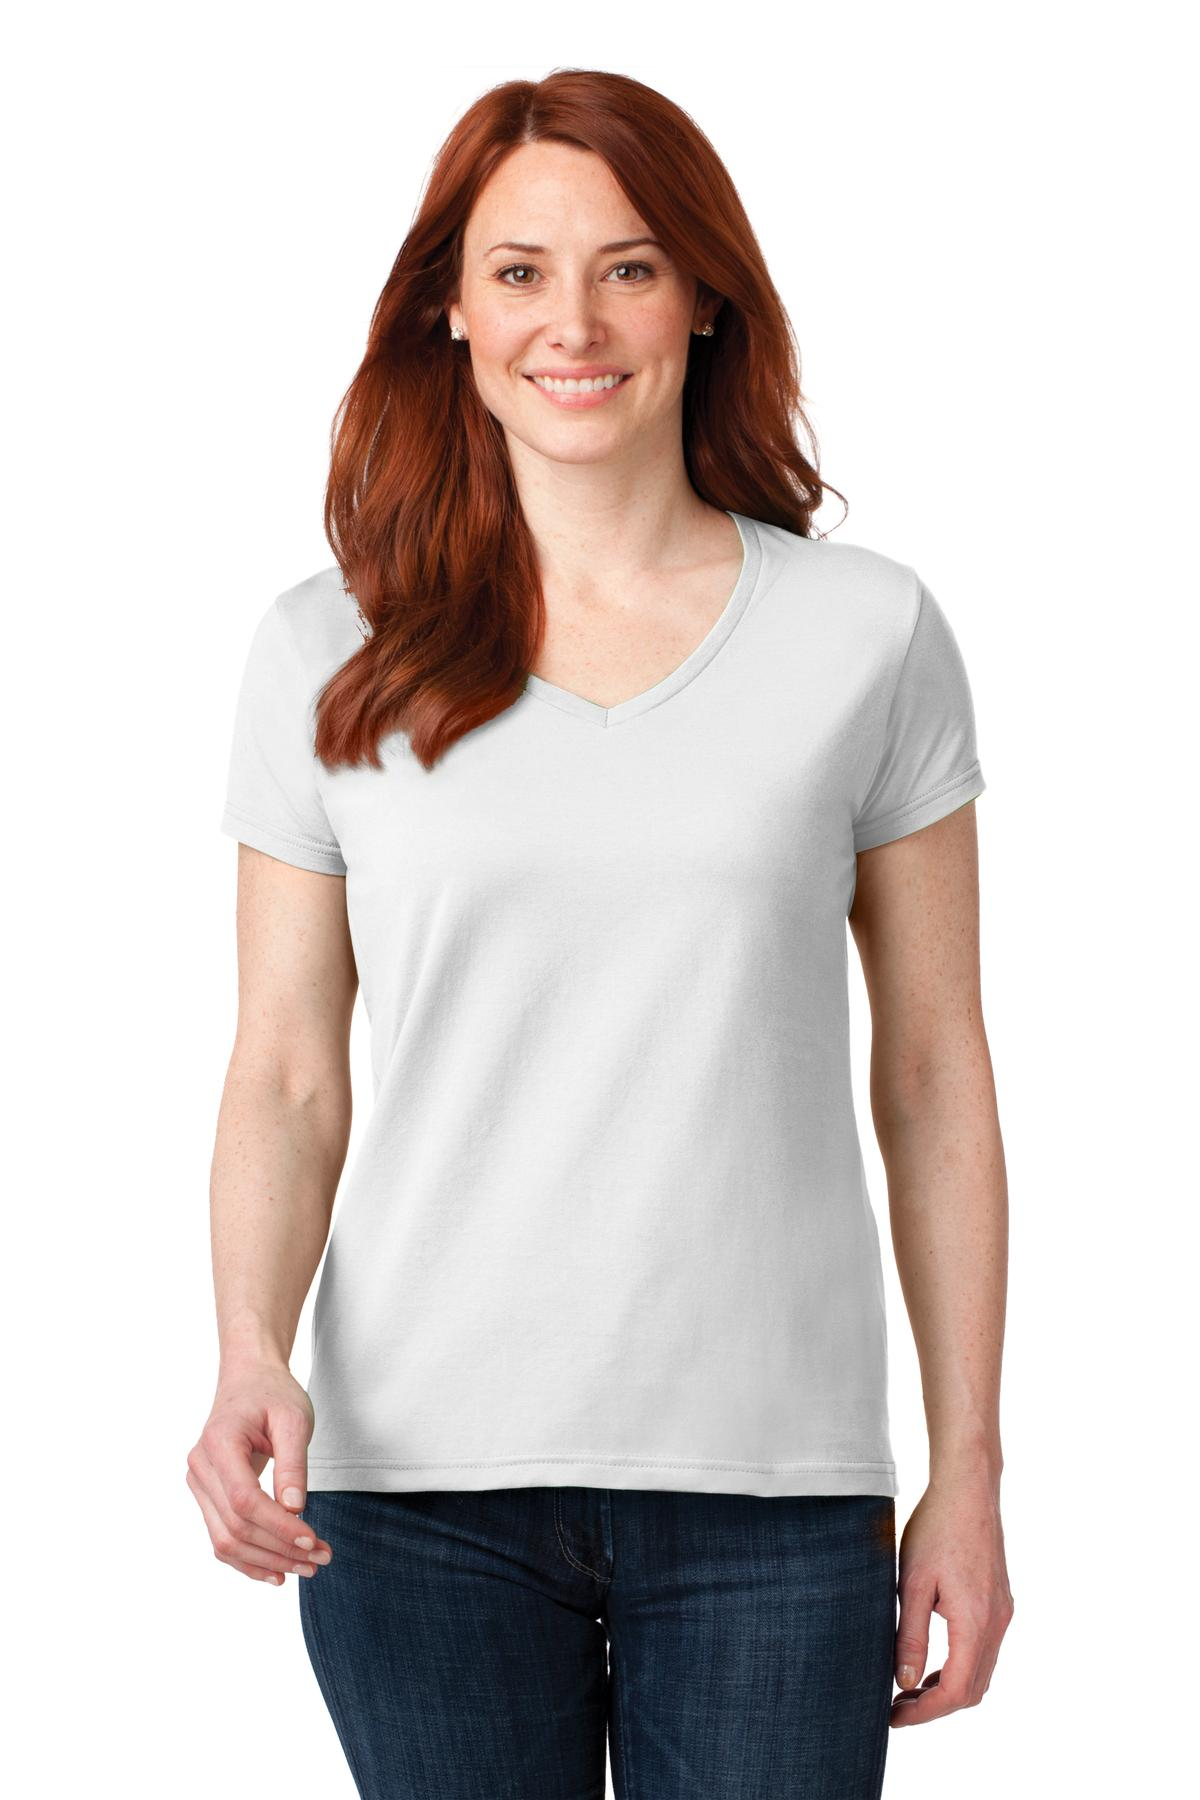 Anvil Ladies 100% Combed Ring Spun Cotton V-Neck T-Shirt. 88VL